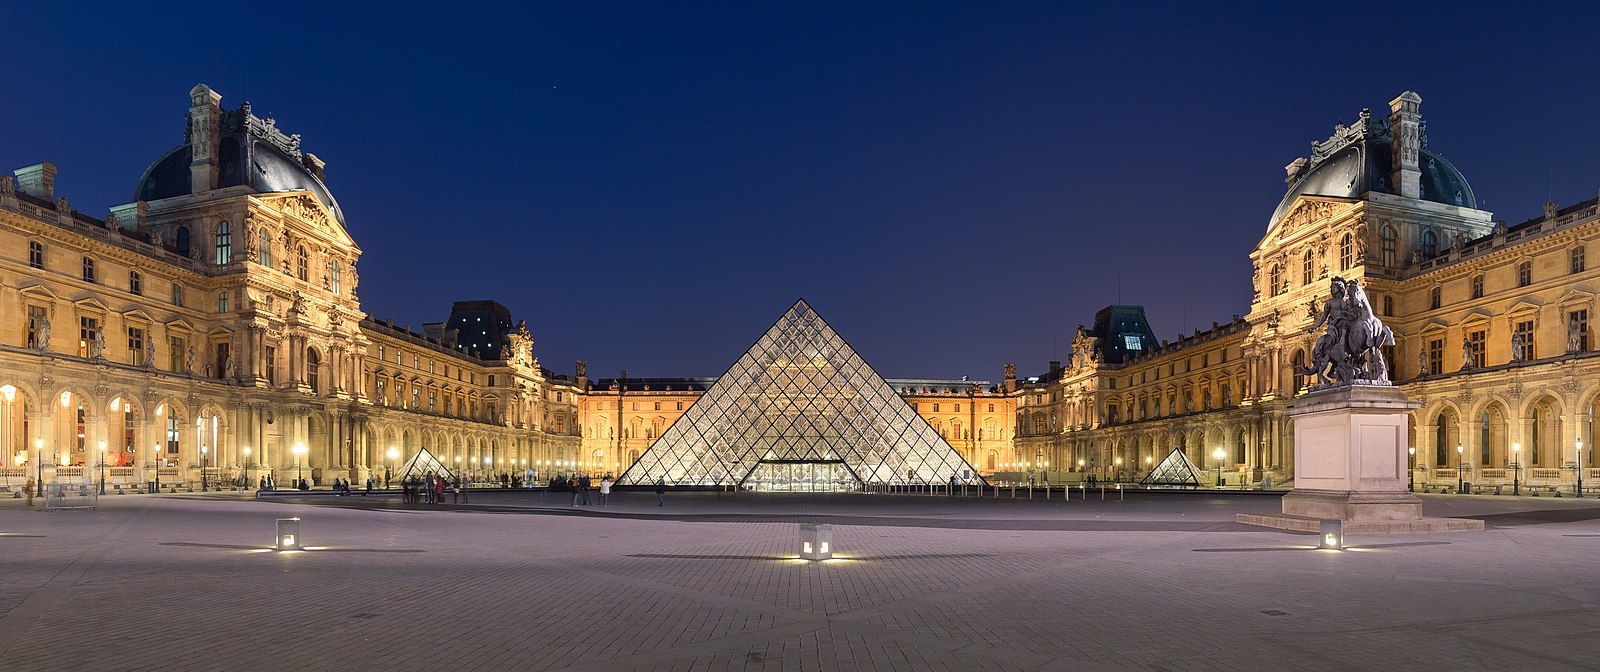 The Louvre Palace and the pyramid (by night) Louvre Museum Wikimedia Commons.jpg